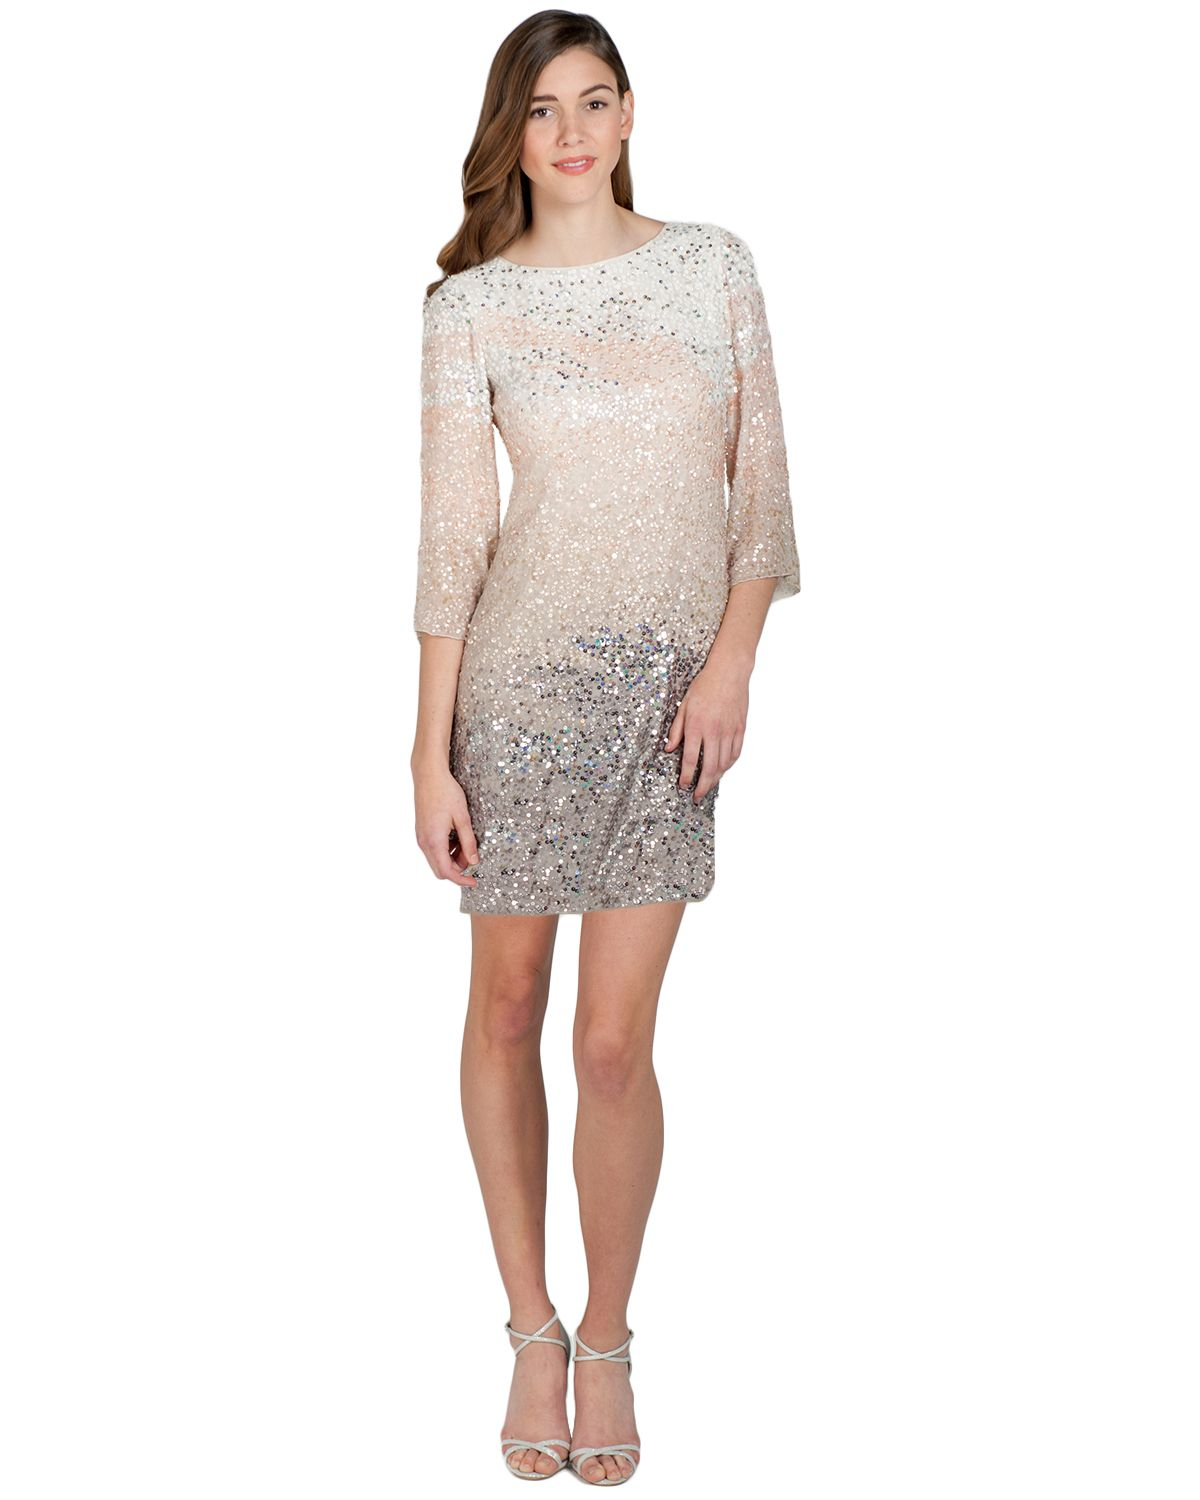 6fa2778e6a6 SC1339 Ombre Sequin Tunic Cocktail Dress by Badgley Mischka ...